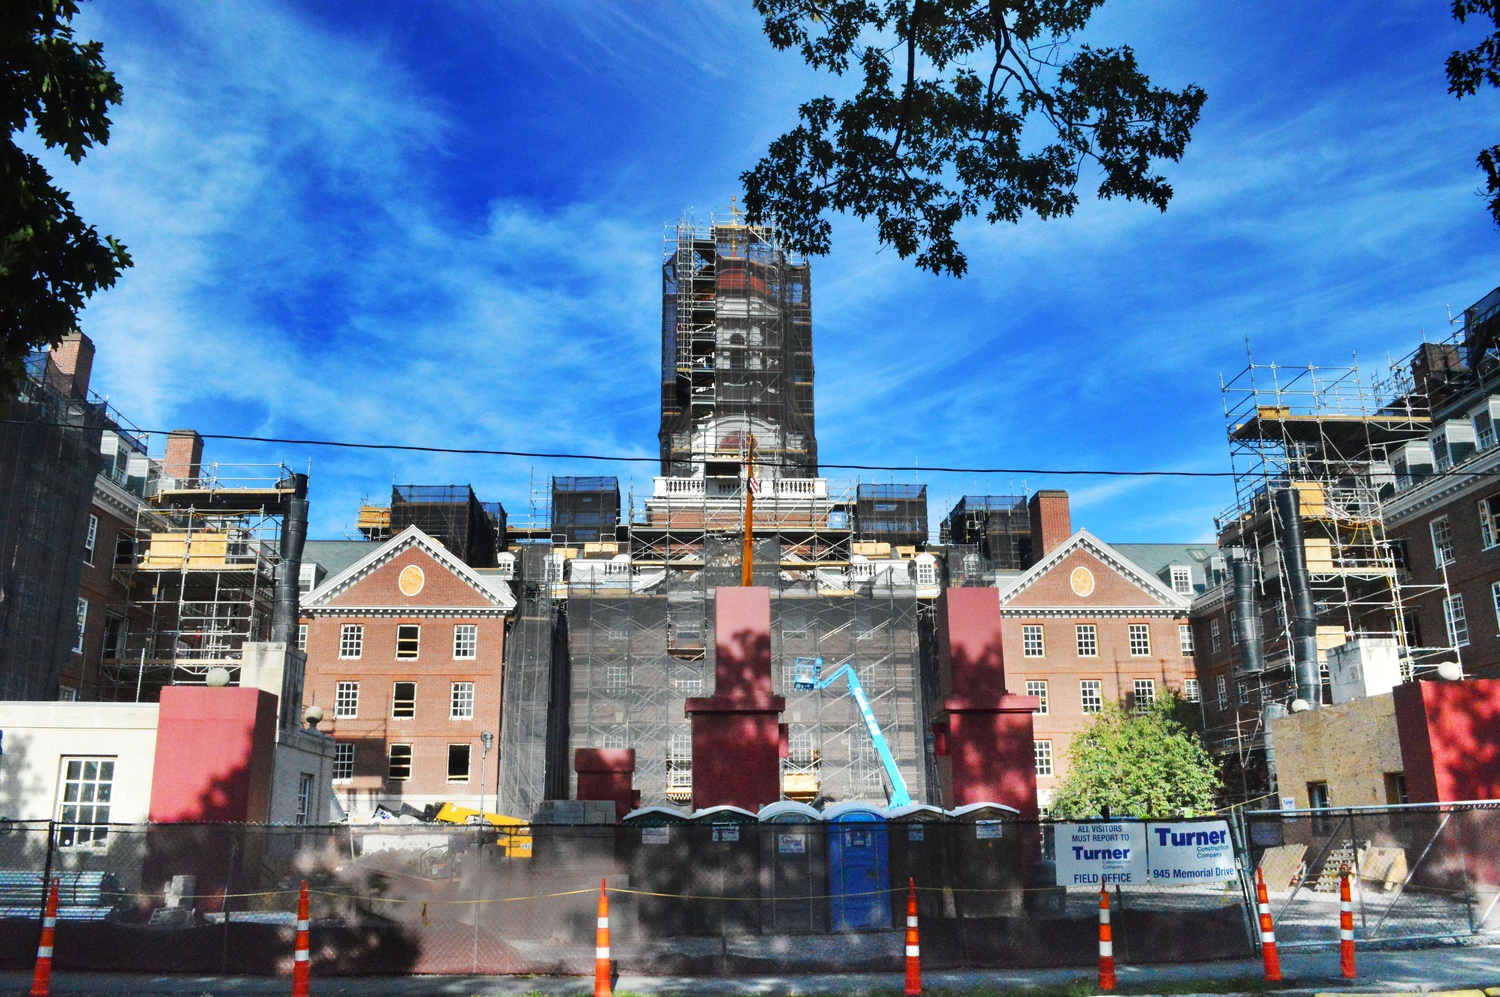 Dunster House has been under construction since June 2014 and is slated to reopen in September 2015.